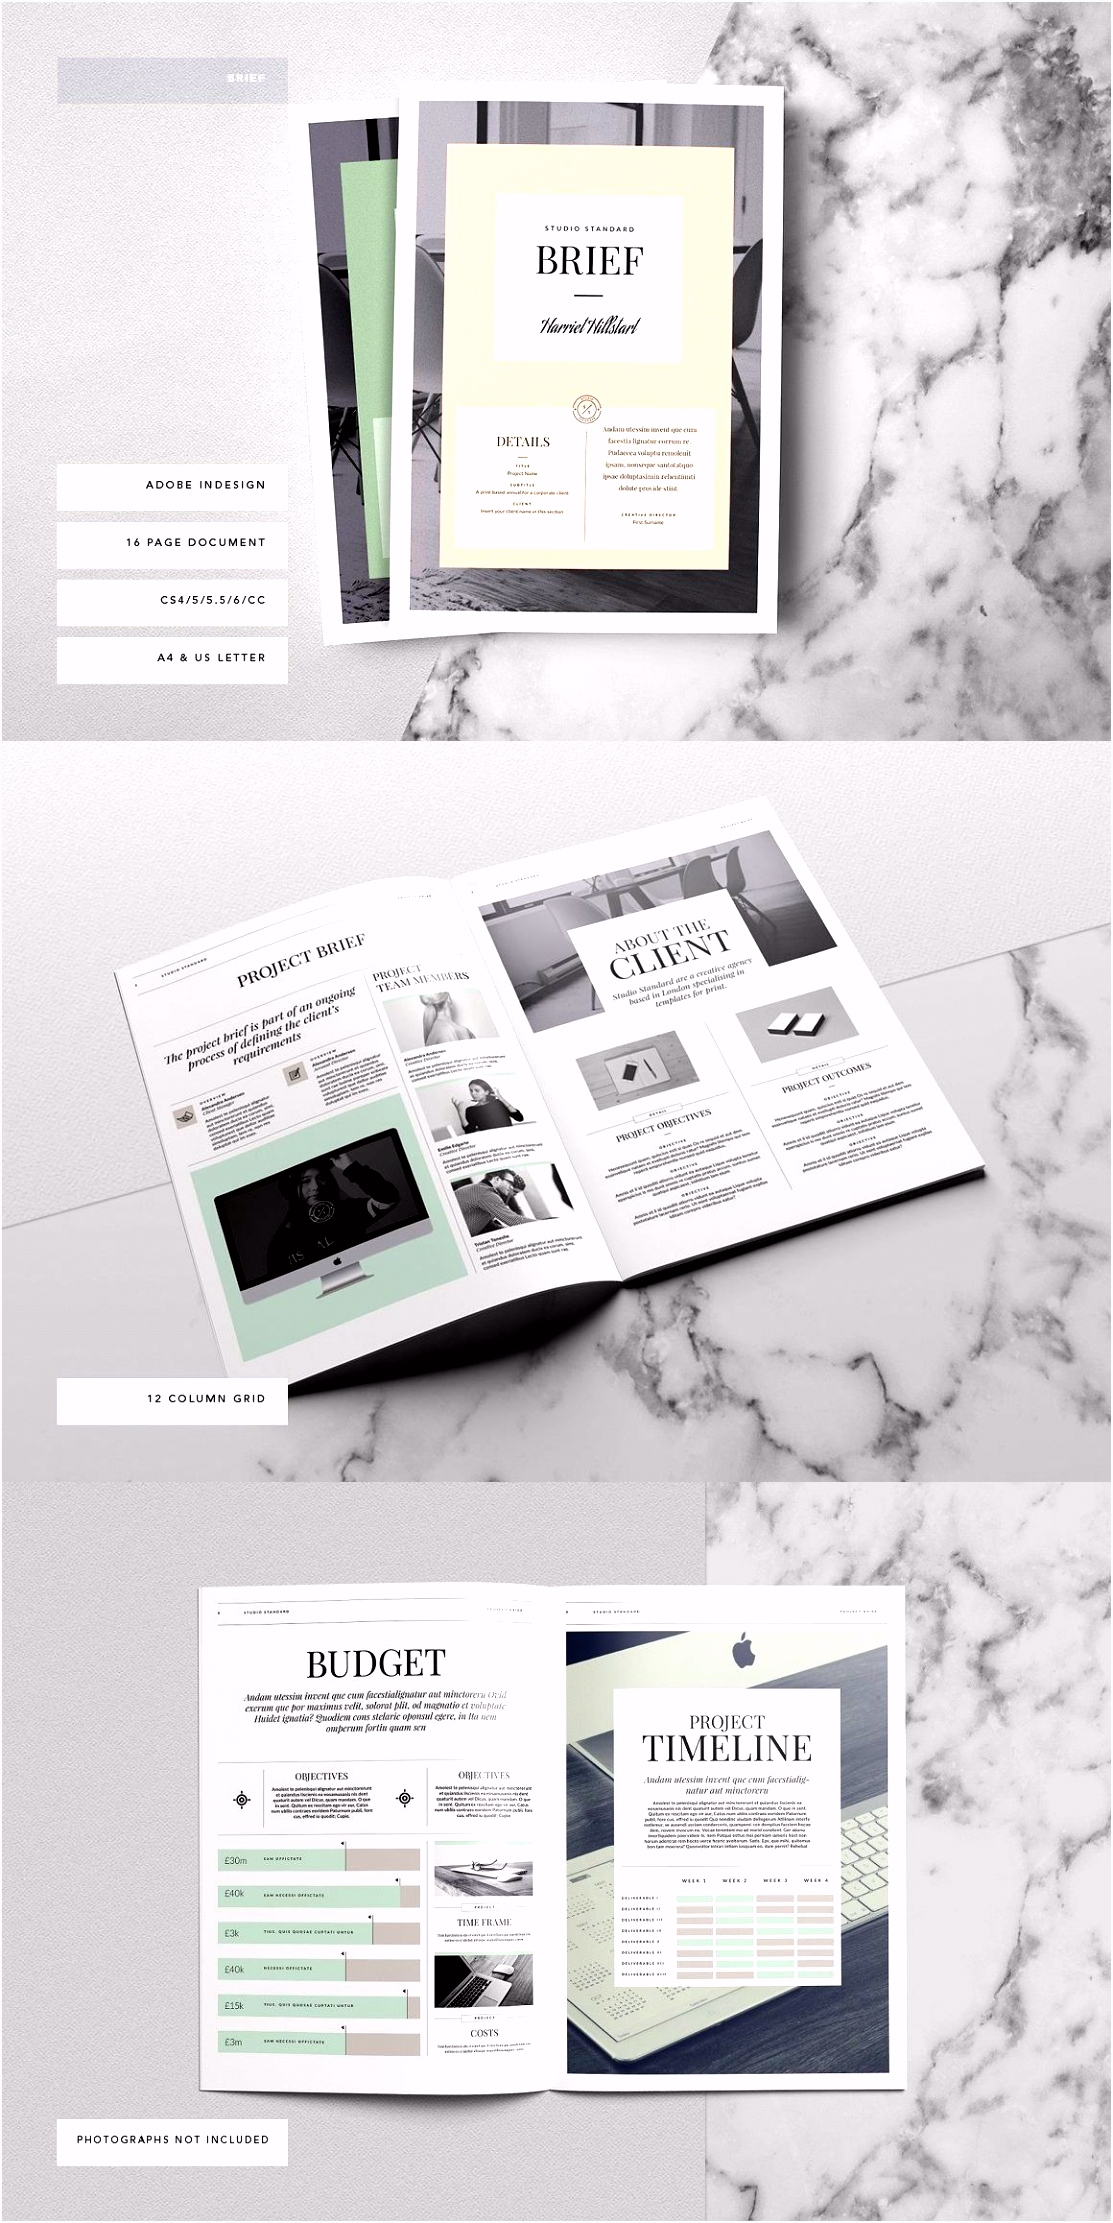 Kingsley Brief Template Graphic Design Pinterest